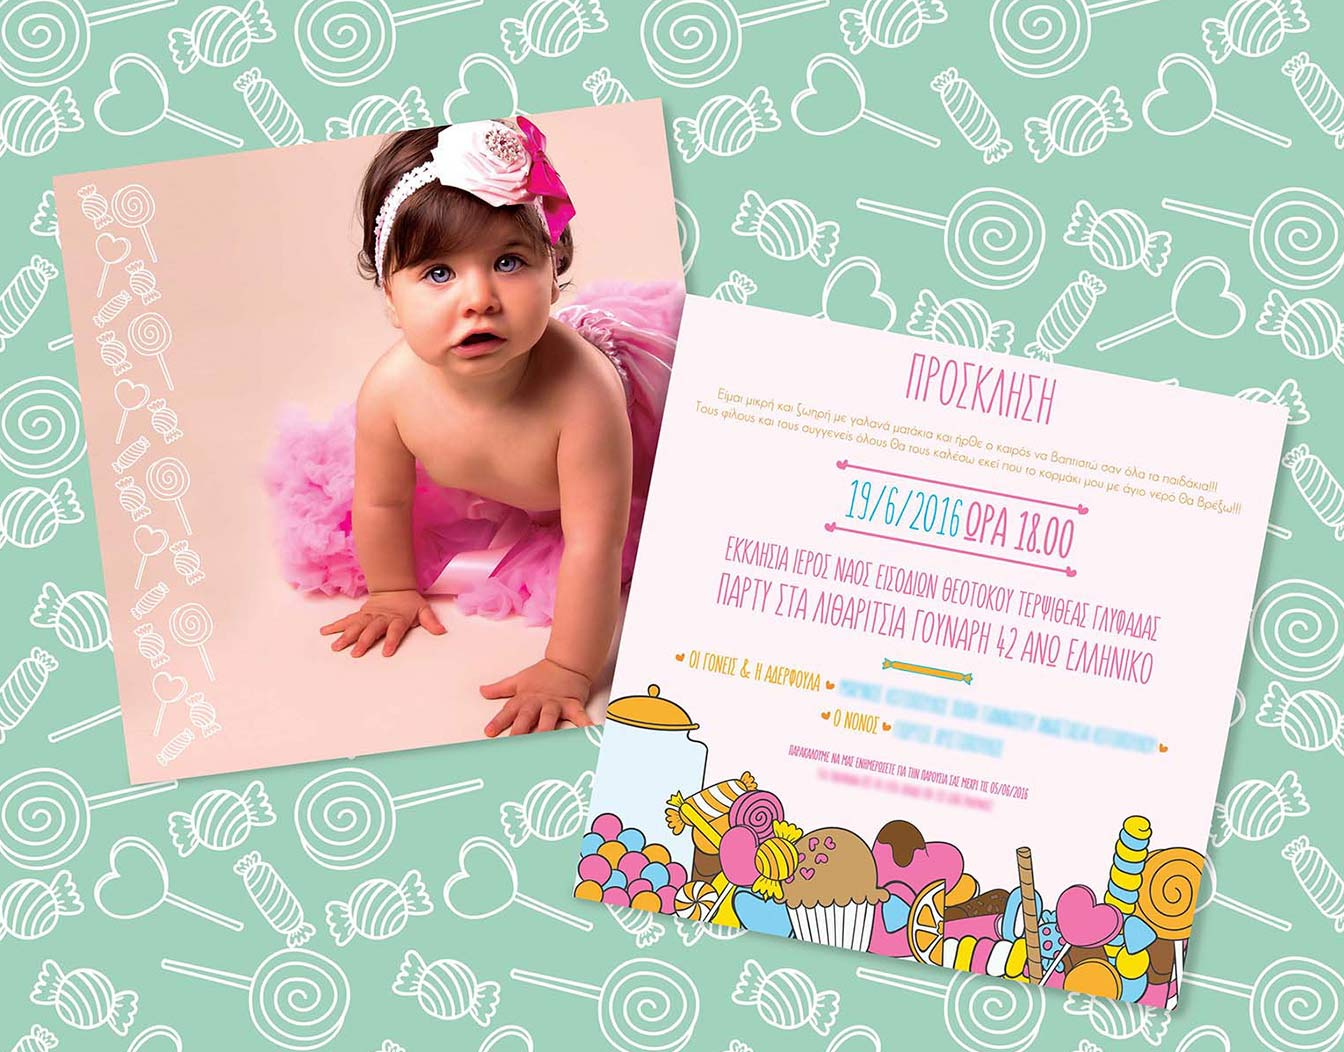 Kids' party invitation, double sided with baby photo upload